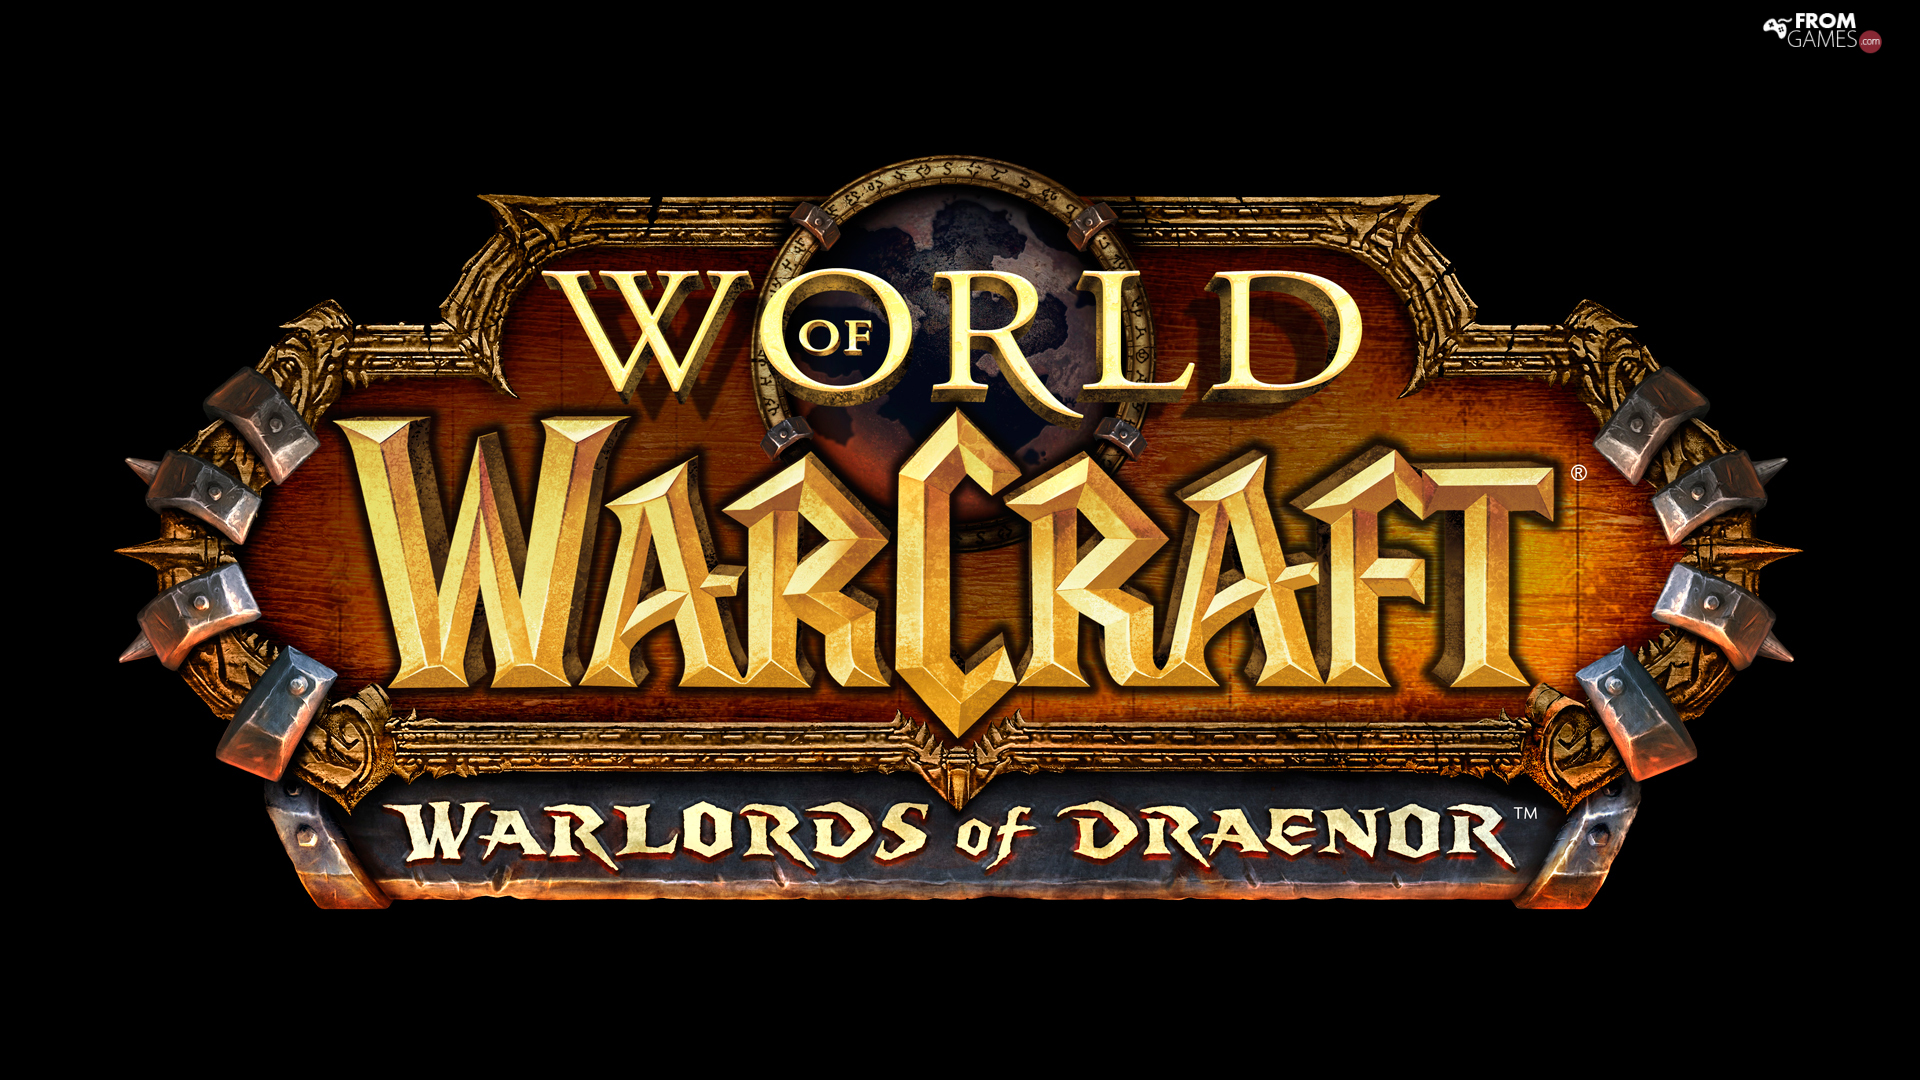 Computer game, World of Warcraft: Warlords of Draenor